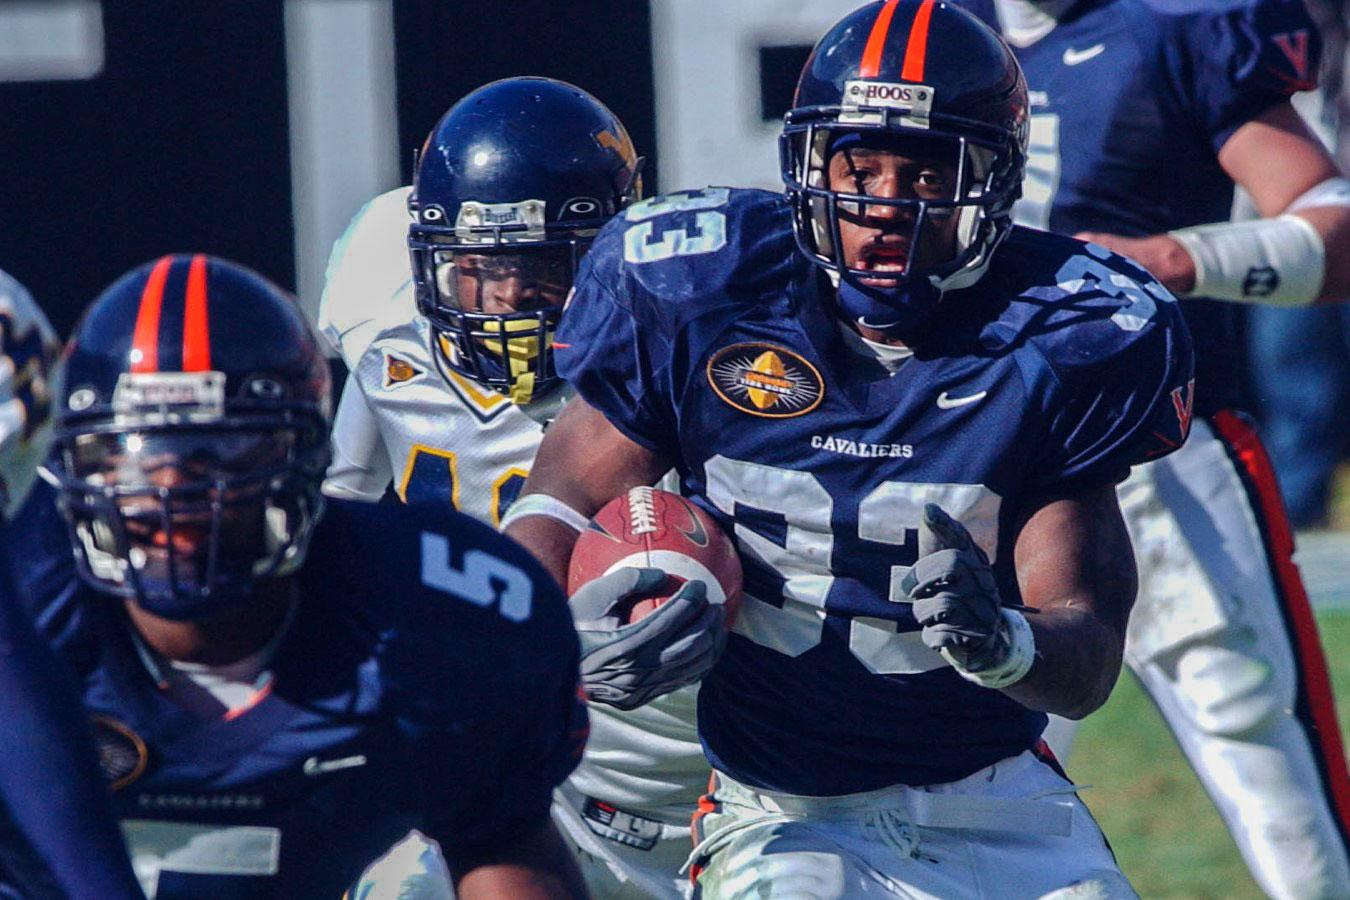 Running back Wali Lundy starred in UVA's two previous bowl appearances in Charlotte – both Cavalier wins – scoring five total touchdowns and earning game MVP honors in 2002.